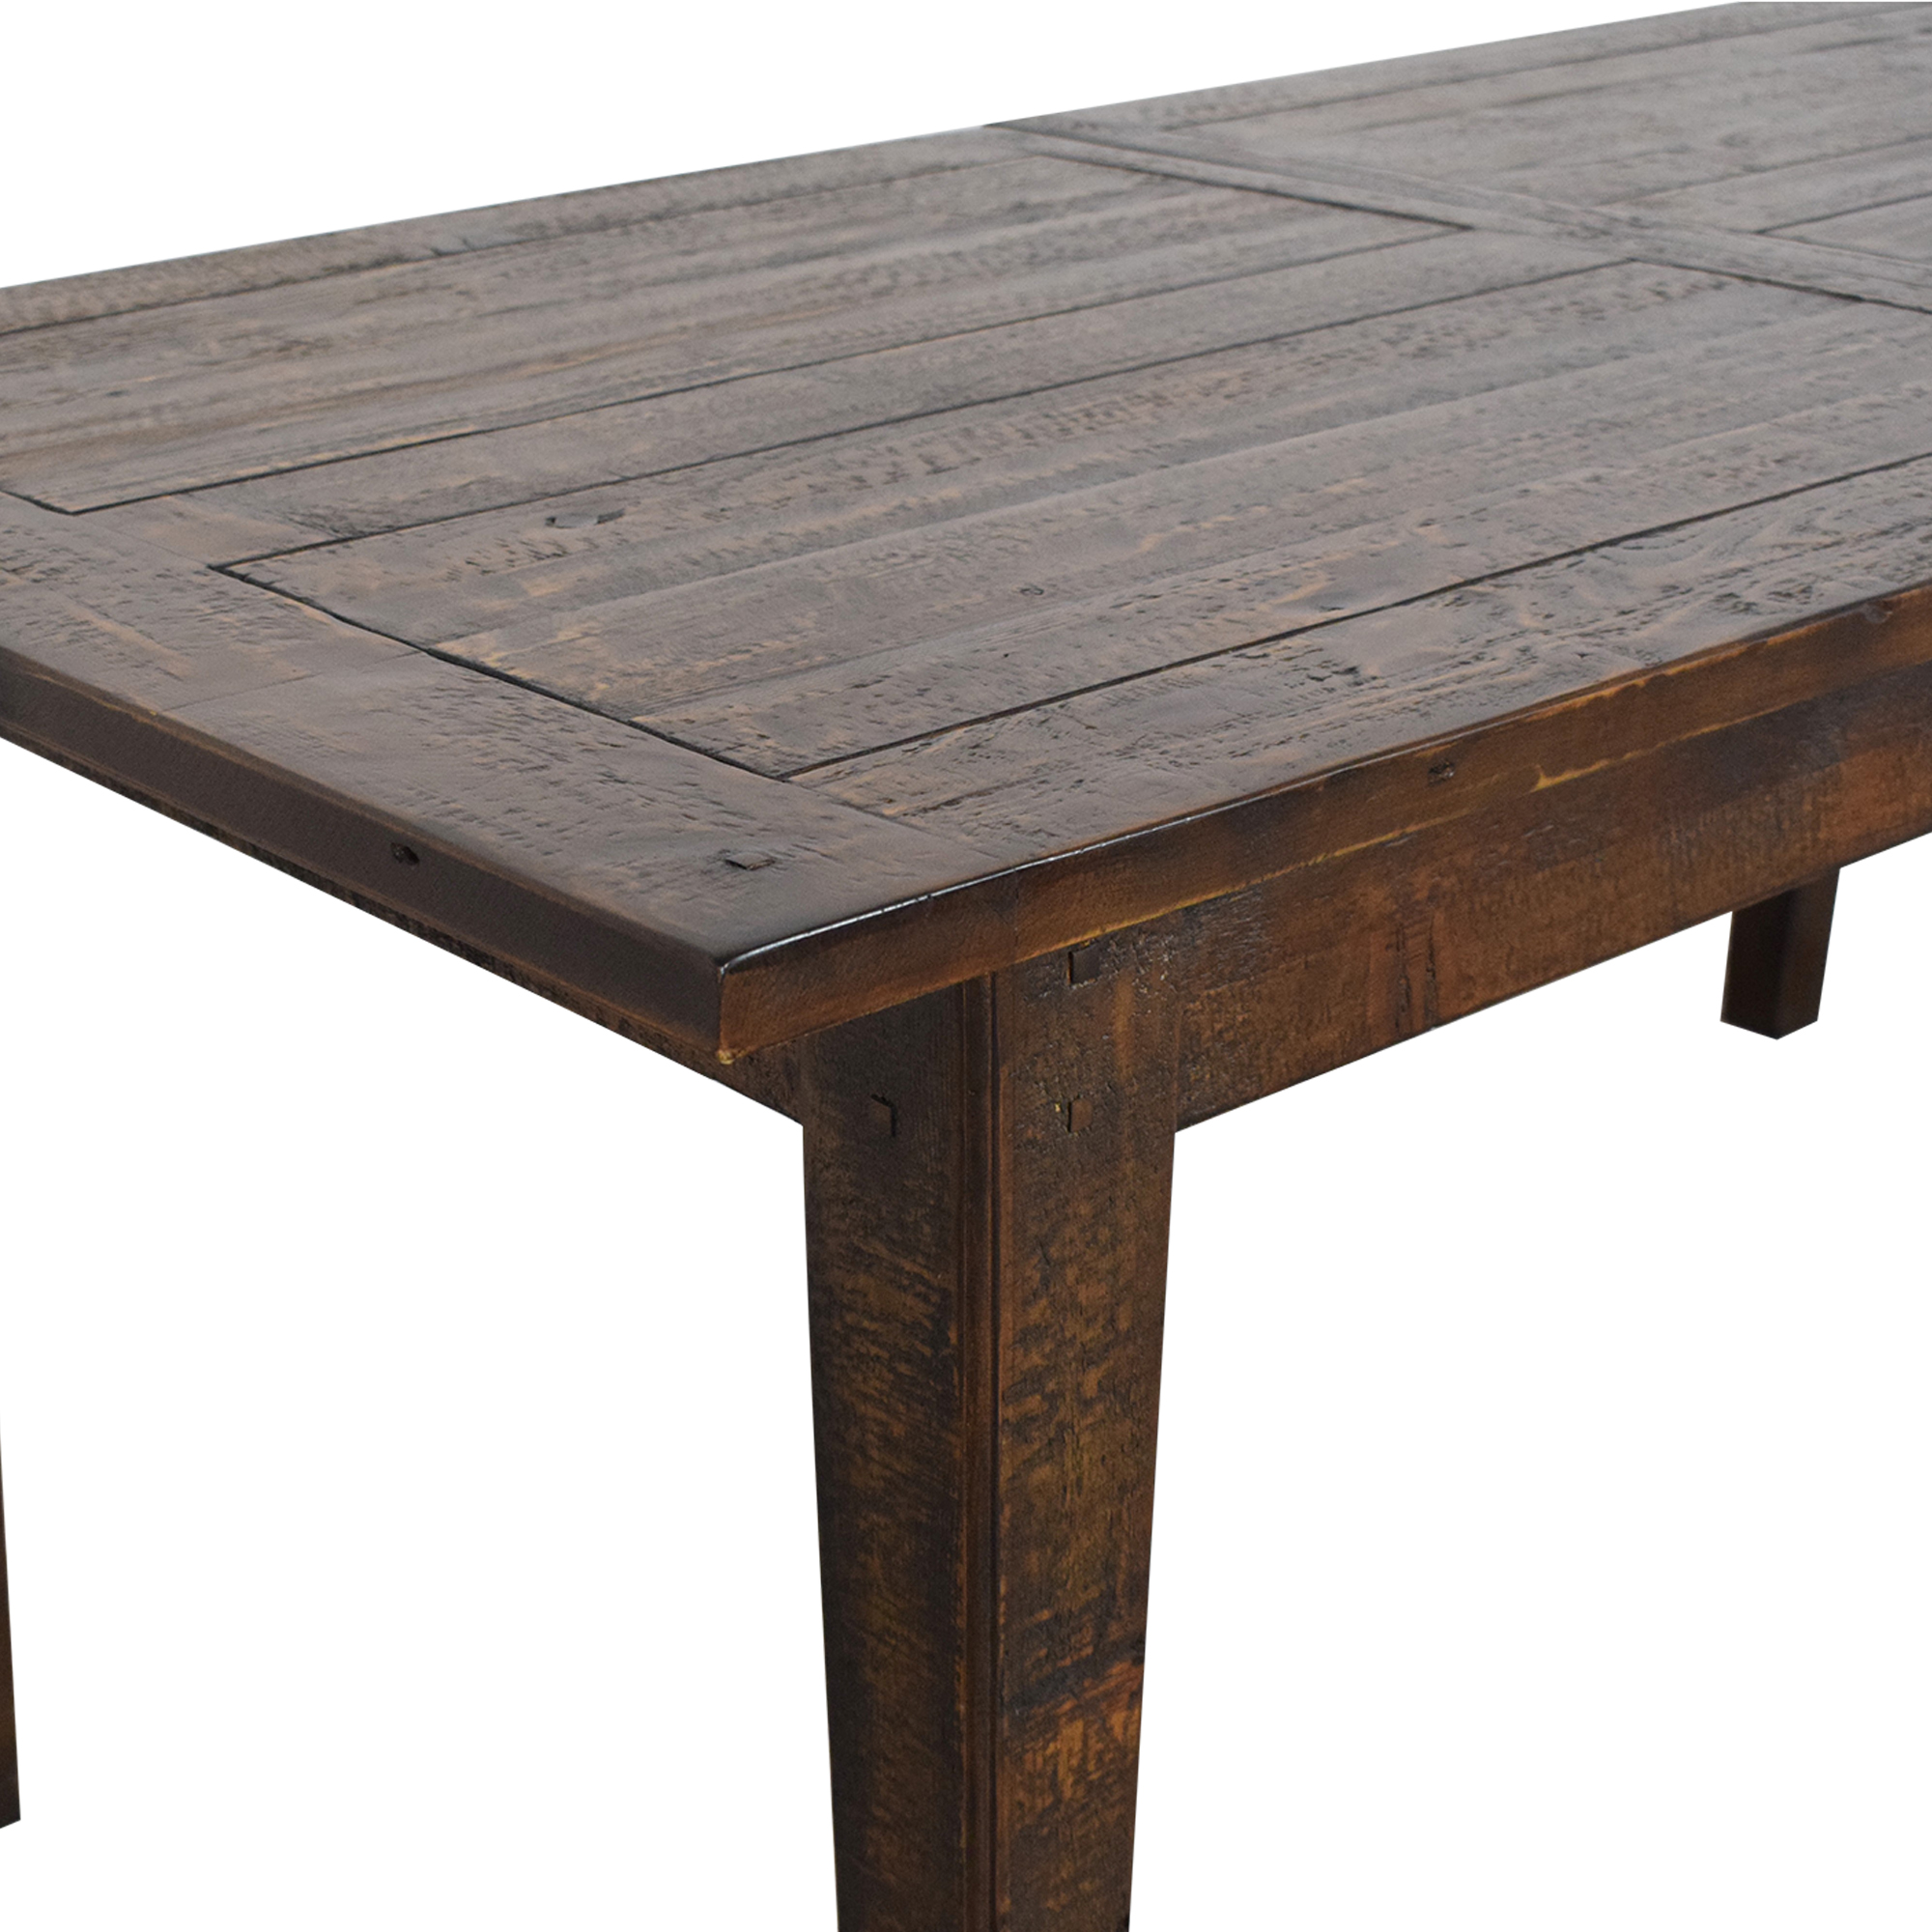 Restoration Hardware Restoration Hardware Extendable Dining Table coupon